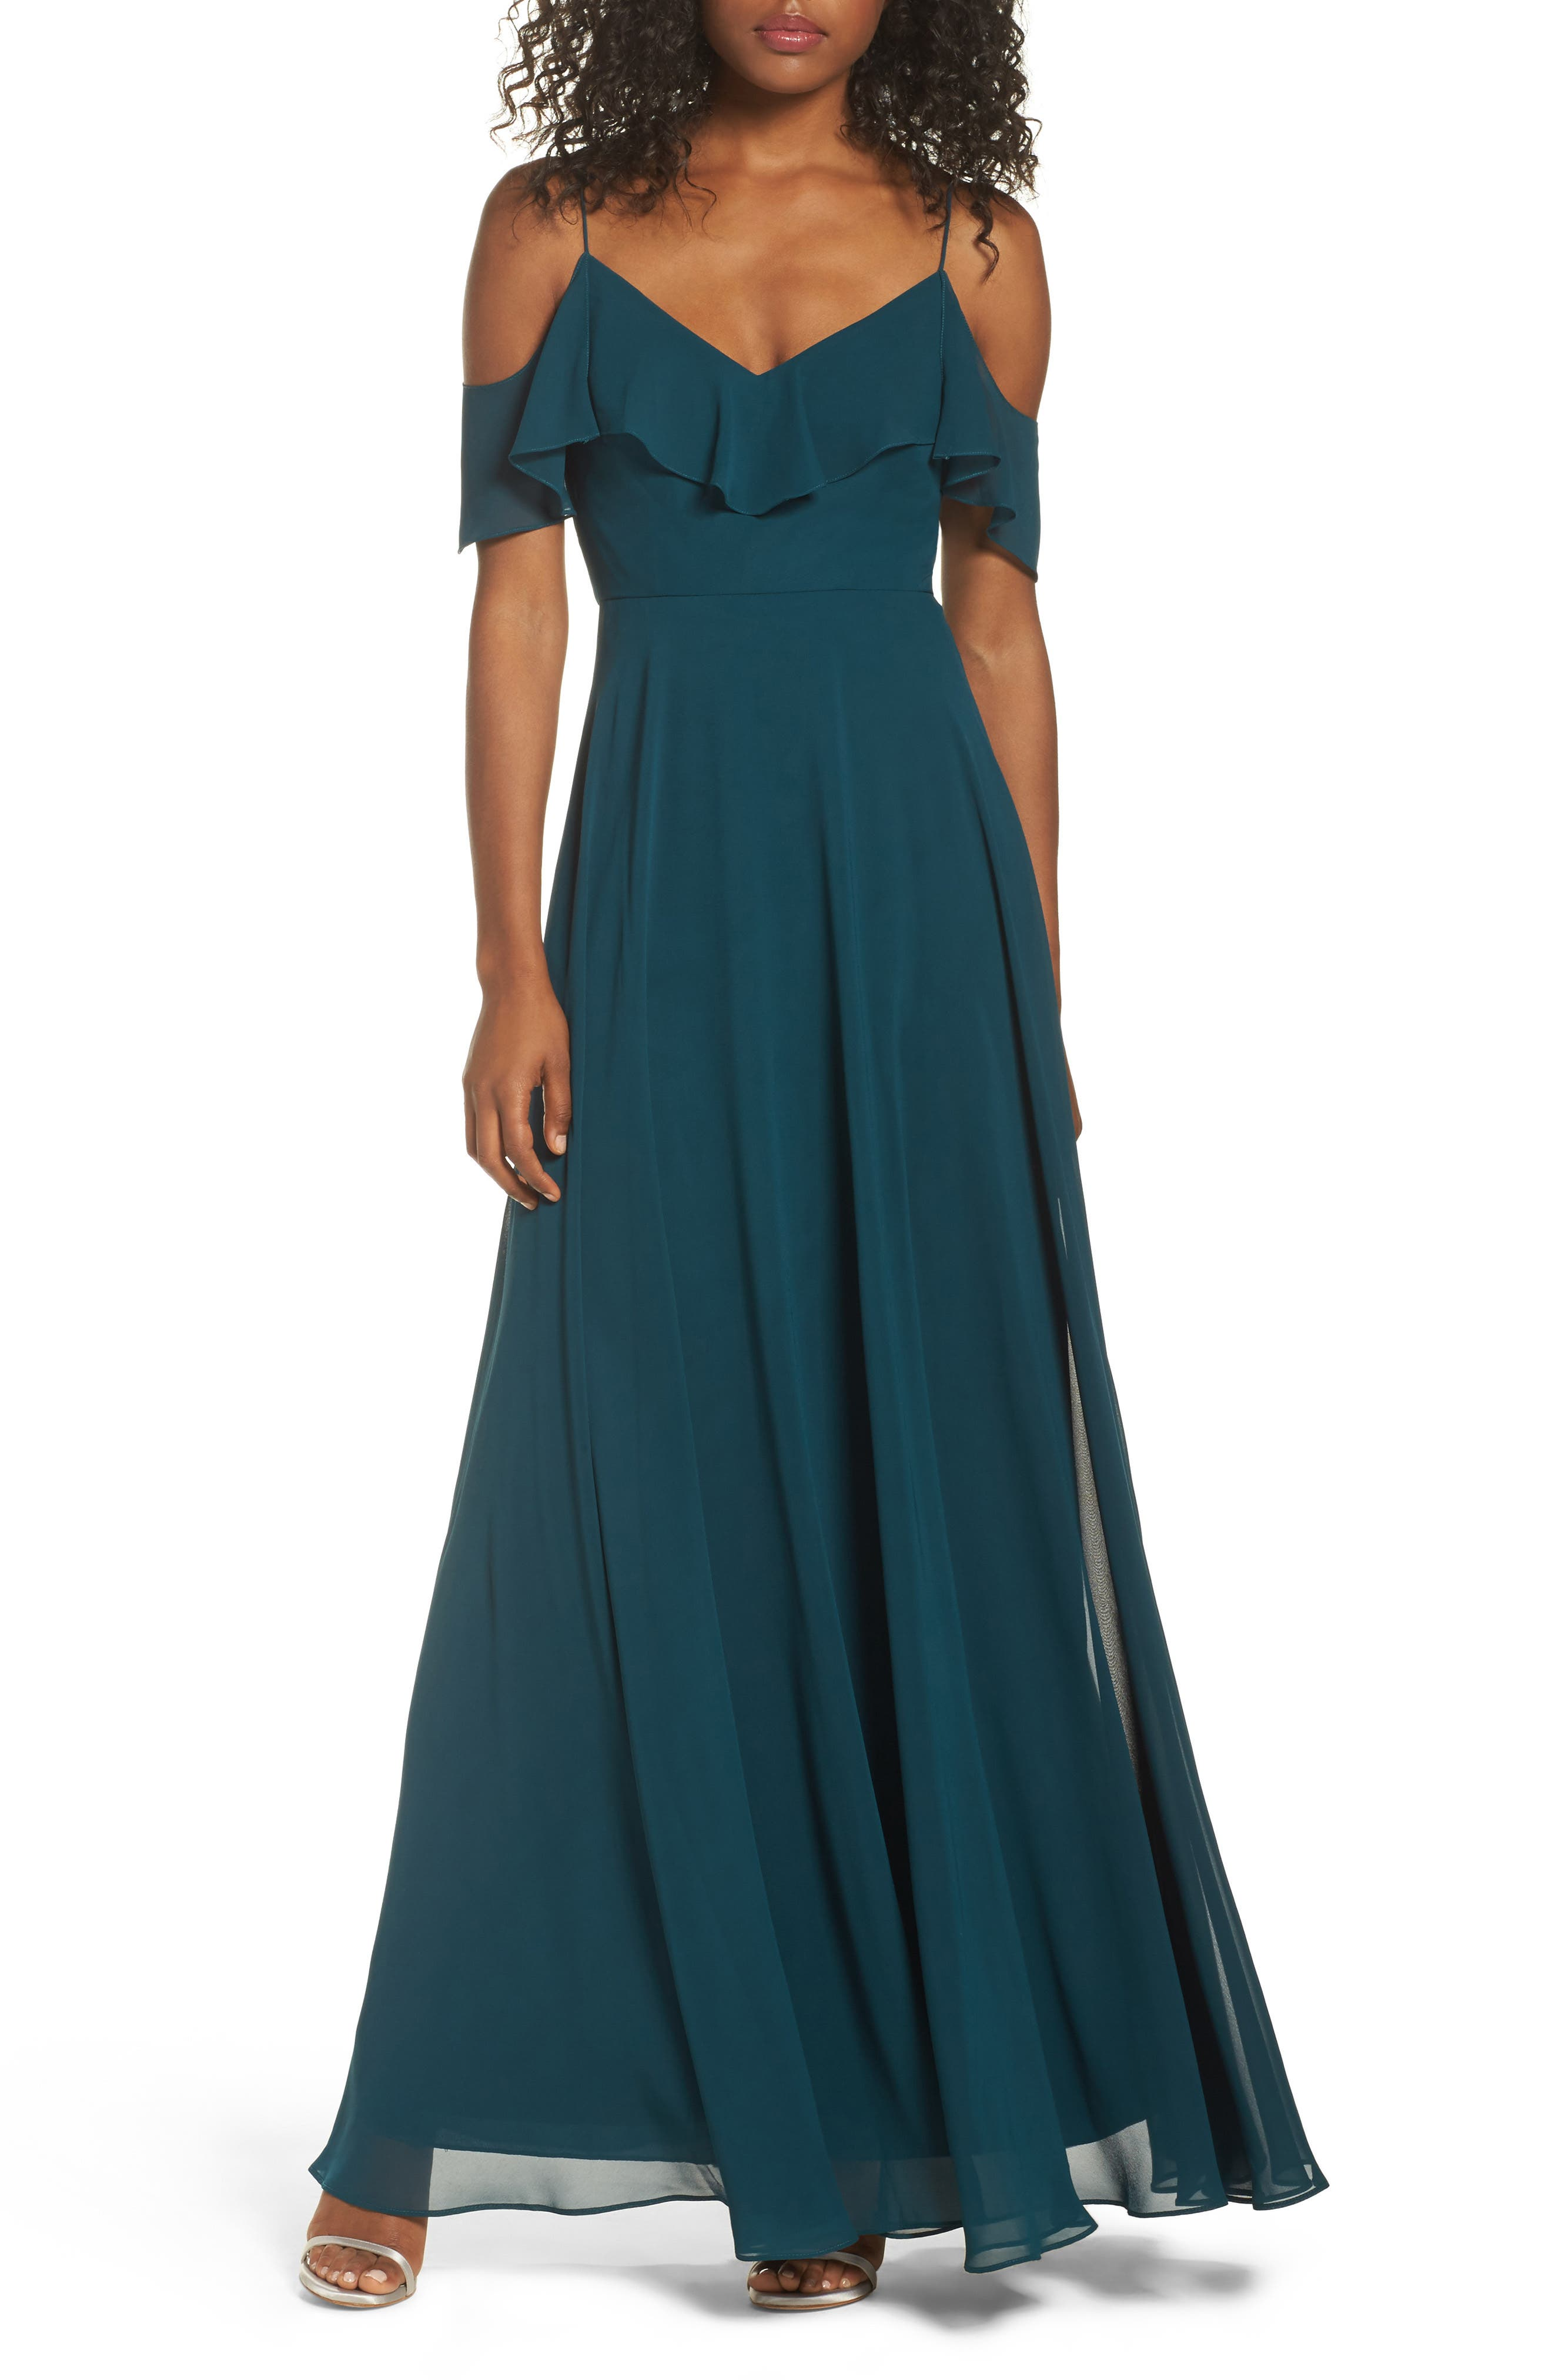 Alternate Image 1 Selected - Jenny Yoo Cold Shoulder Chiffon Gown